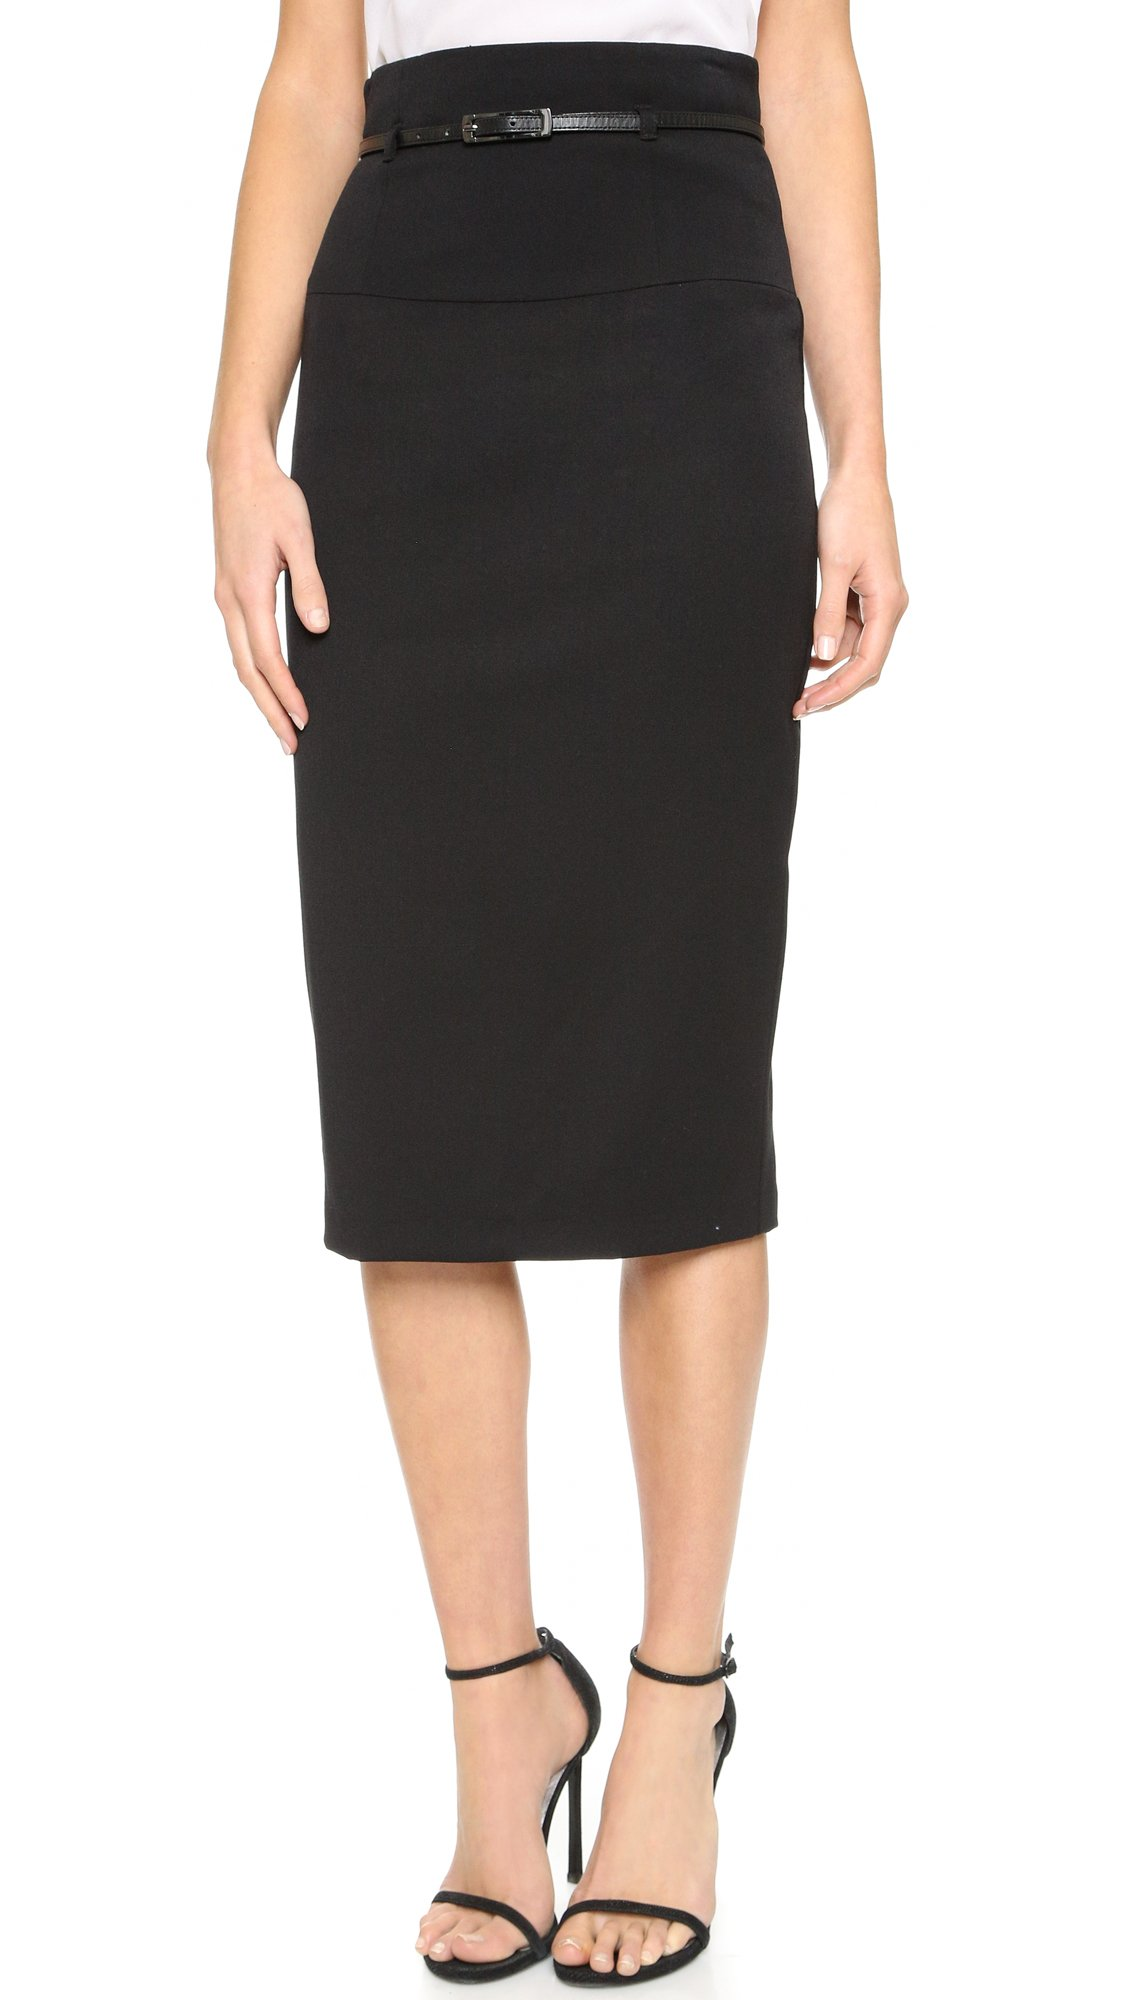 Black Halo Women's High Waisted Pencil Skirt, Black, 2